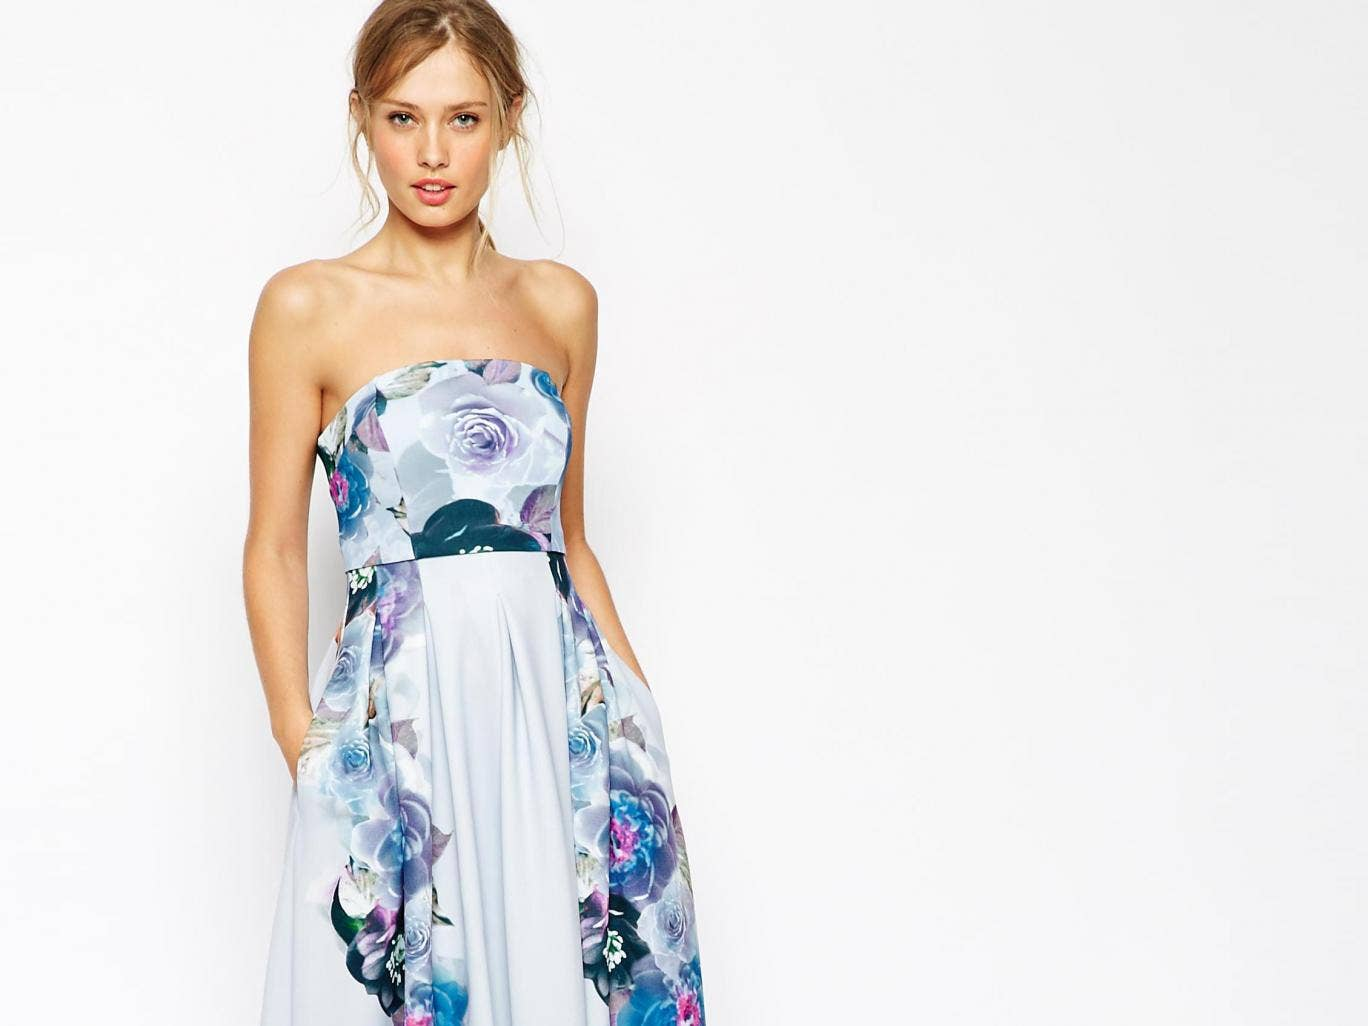 Over The Top Dresses For Prom The dresses of dreams don t